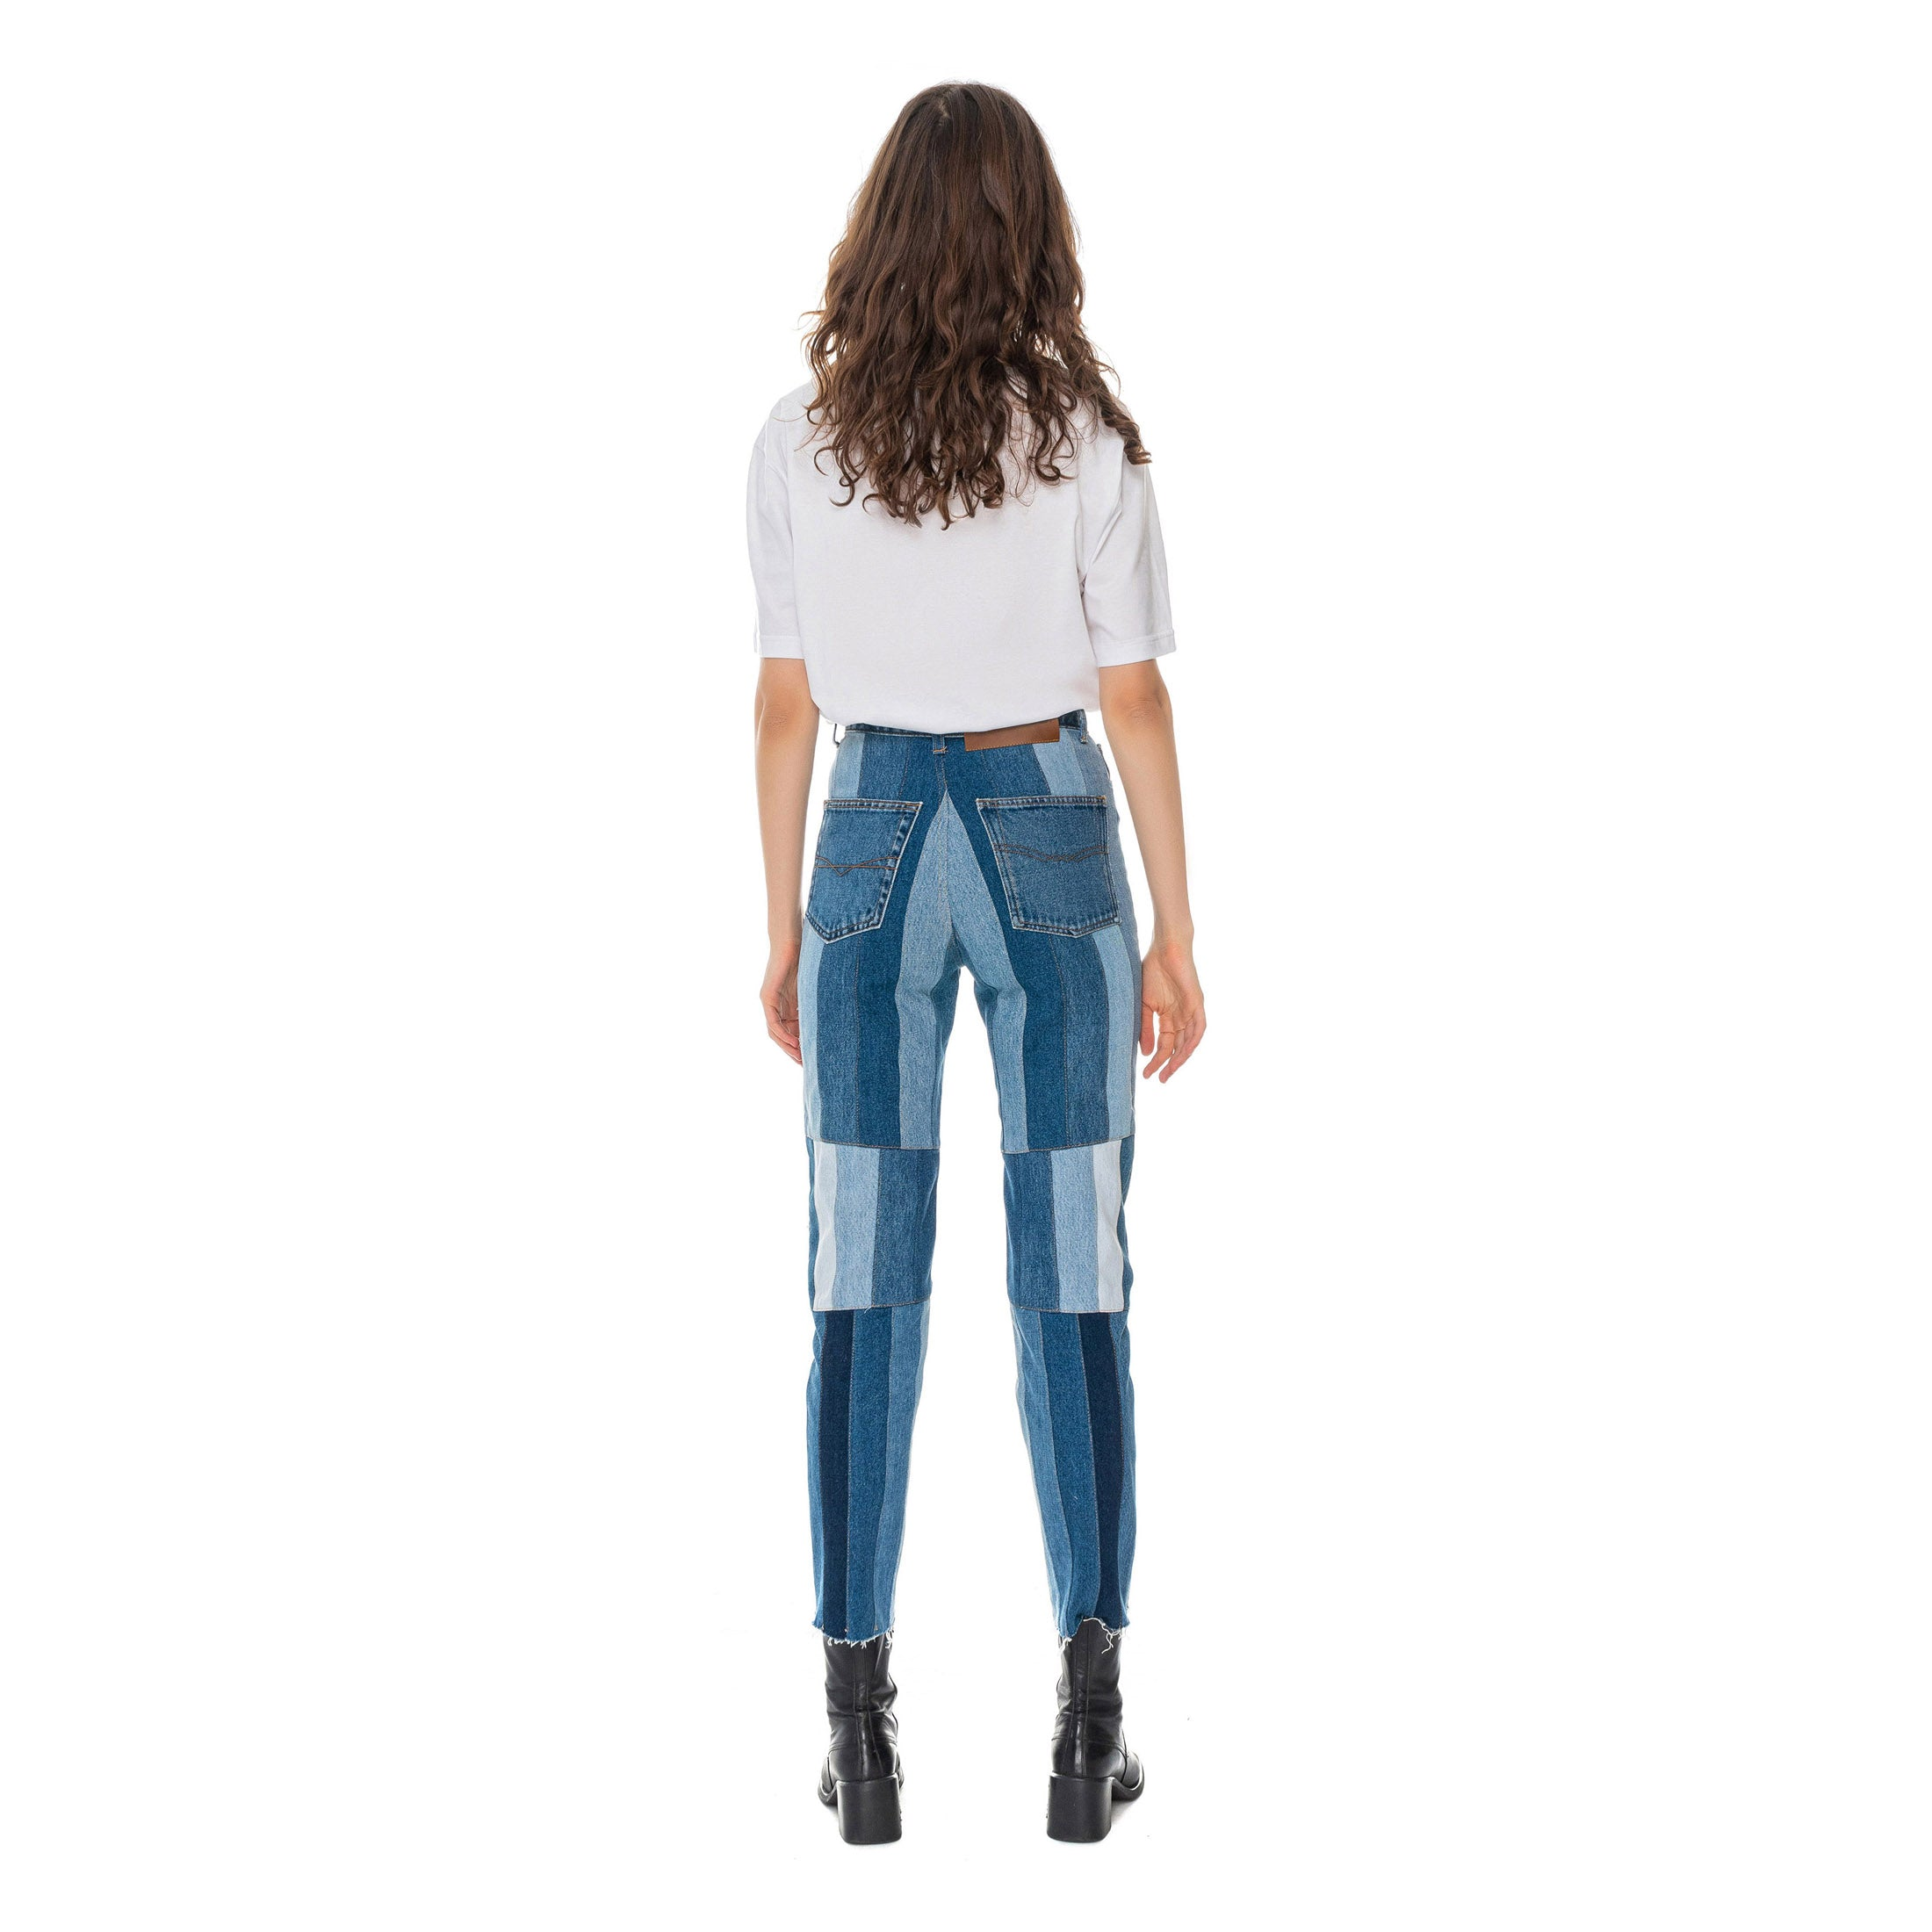 upcycled denim pants from behind